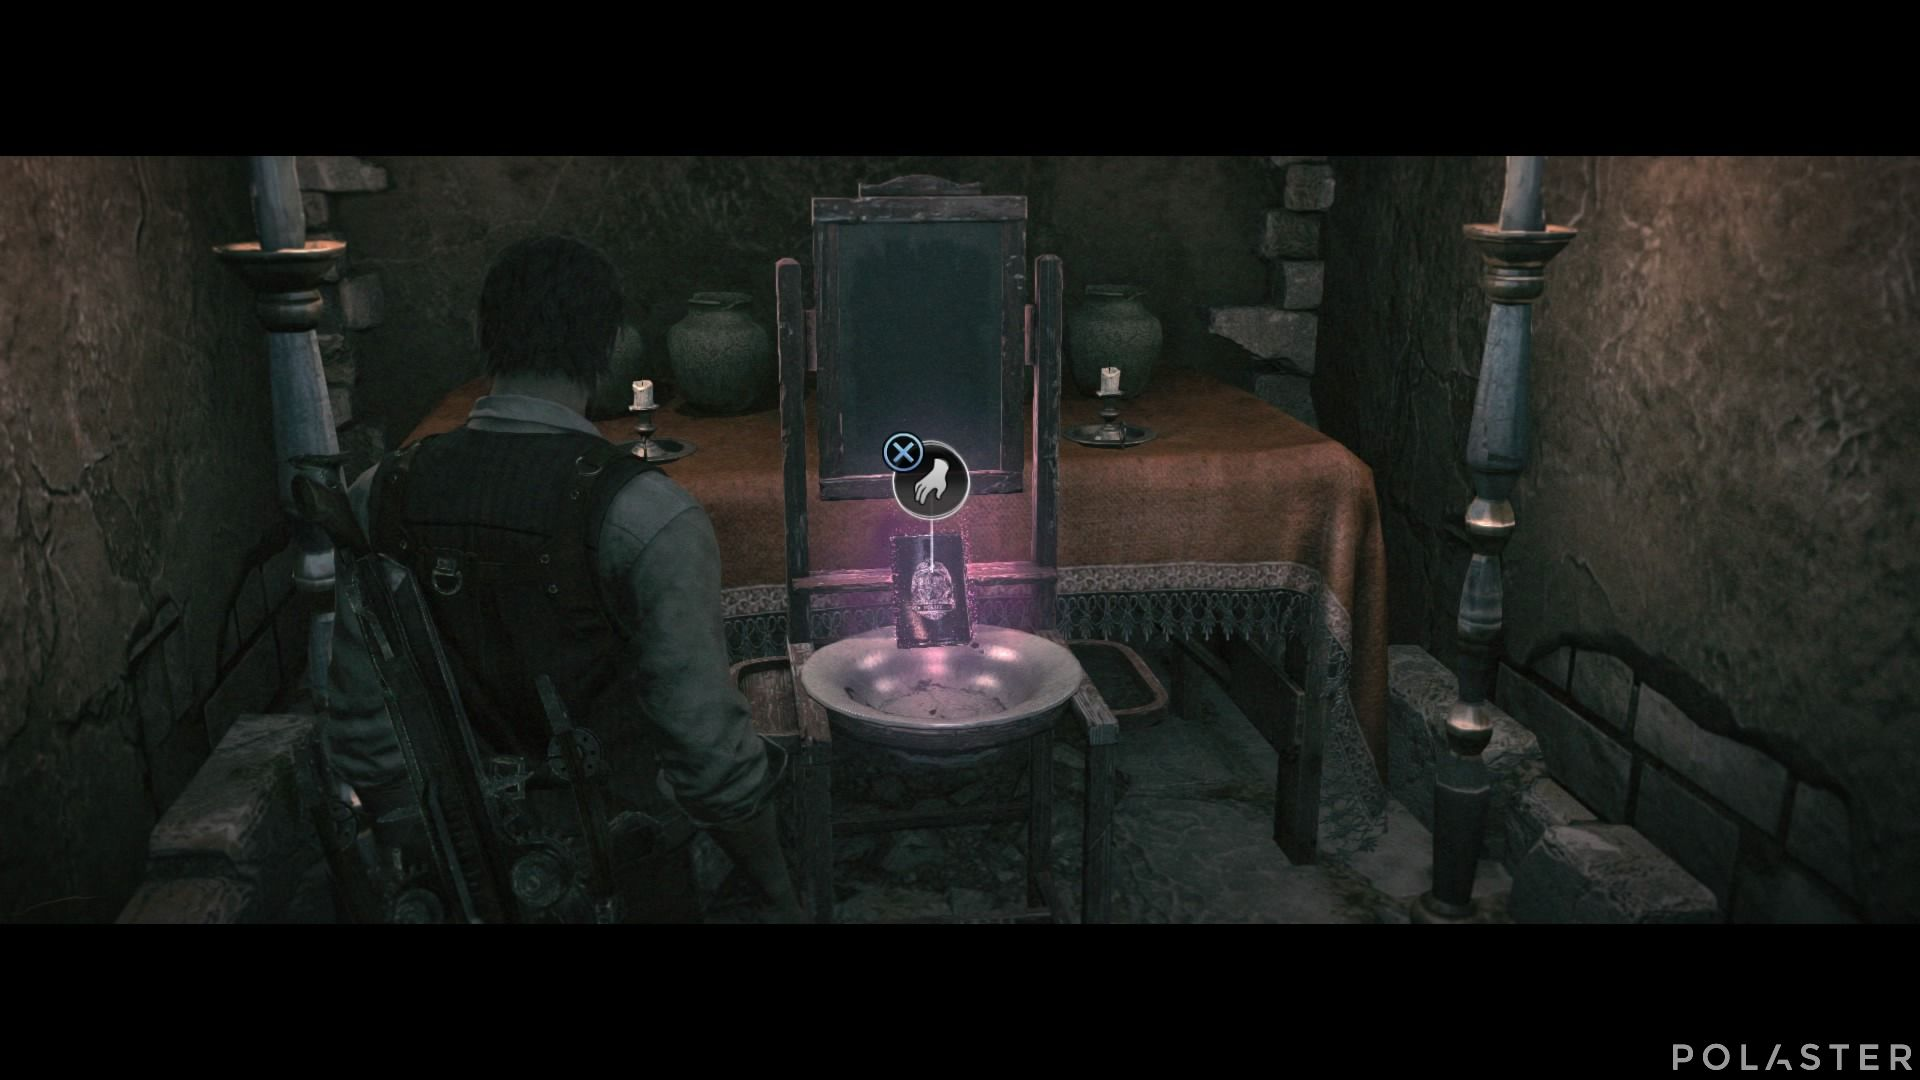 The Evil Within - Coleccionables - Documento personal: Anuncio del nacimiento de Lily